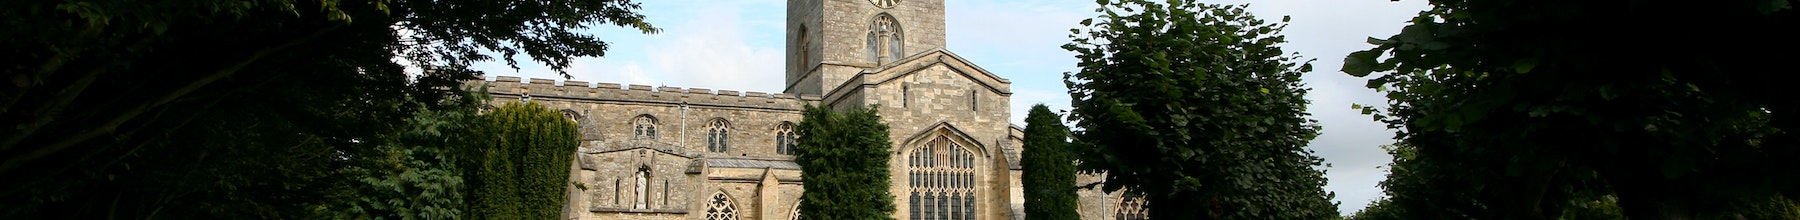 Church of St Mary, Thame